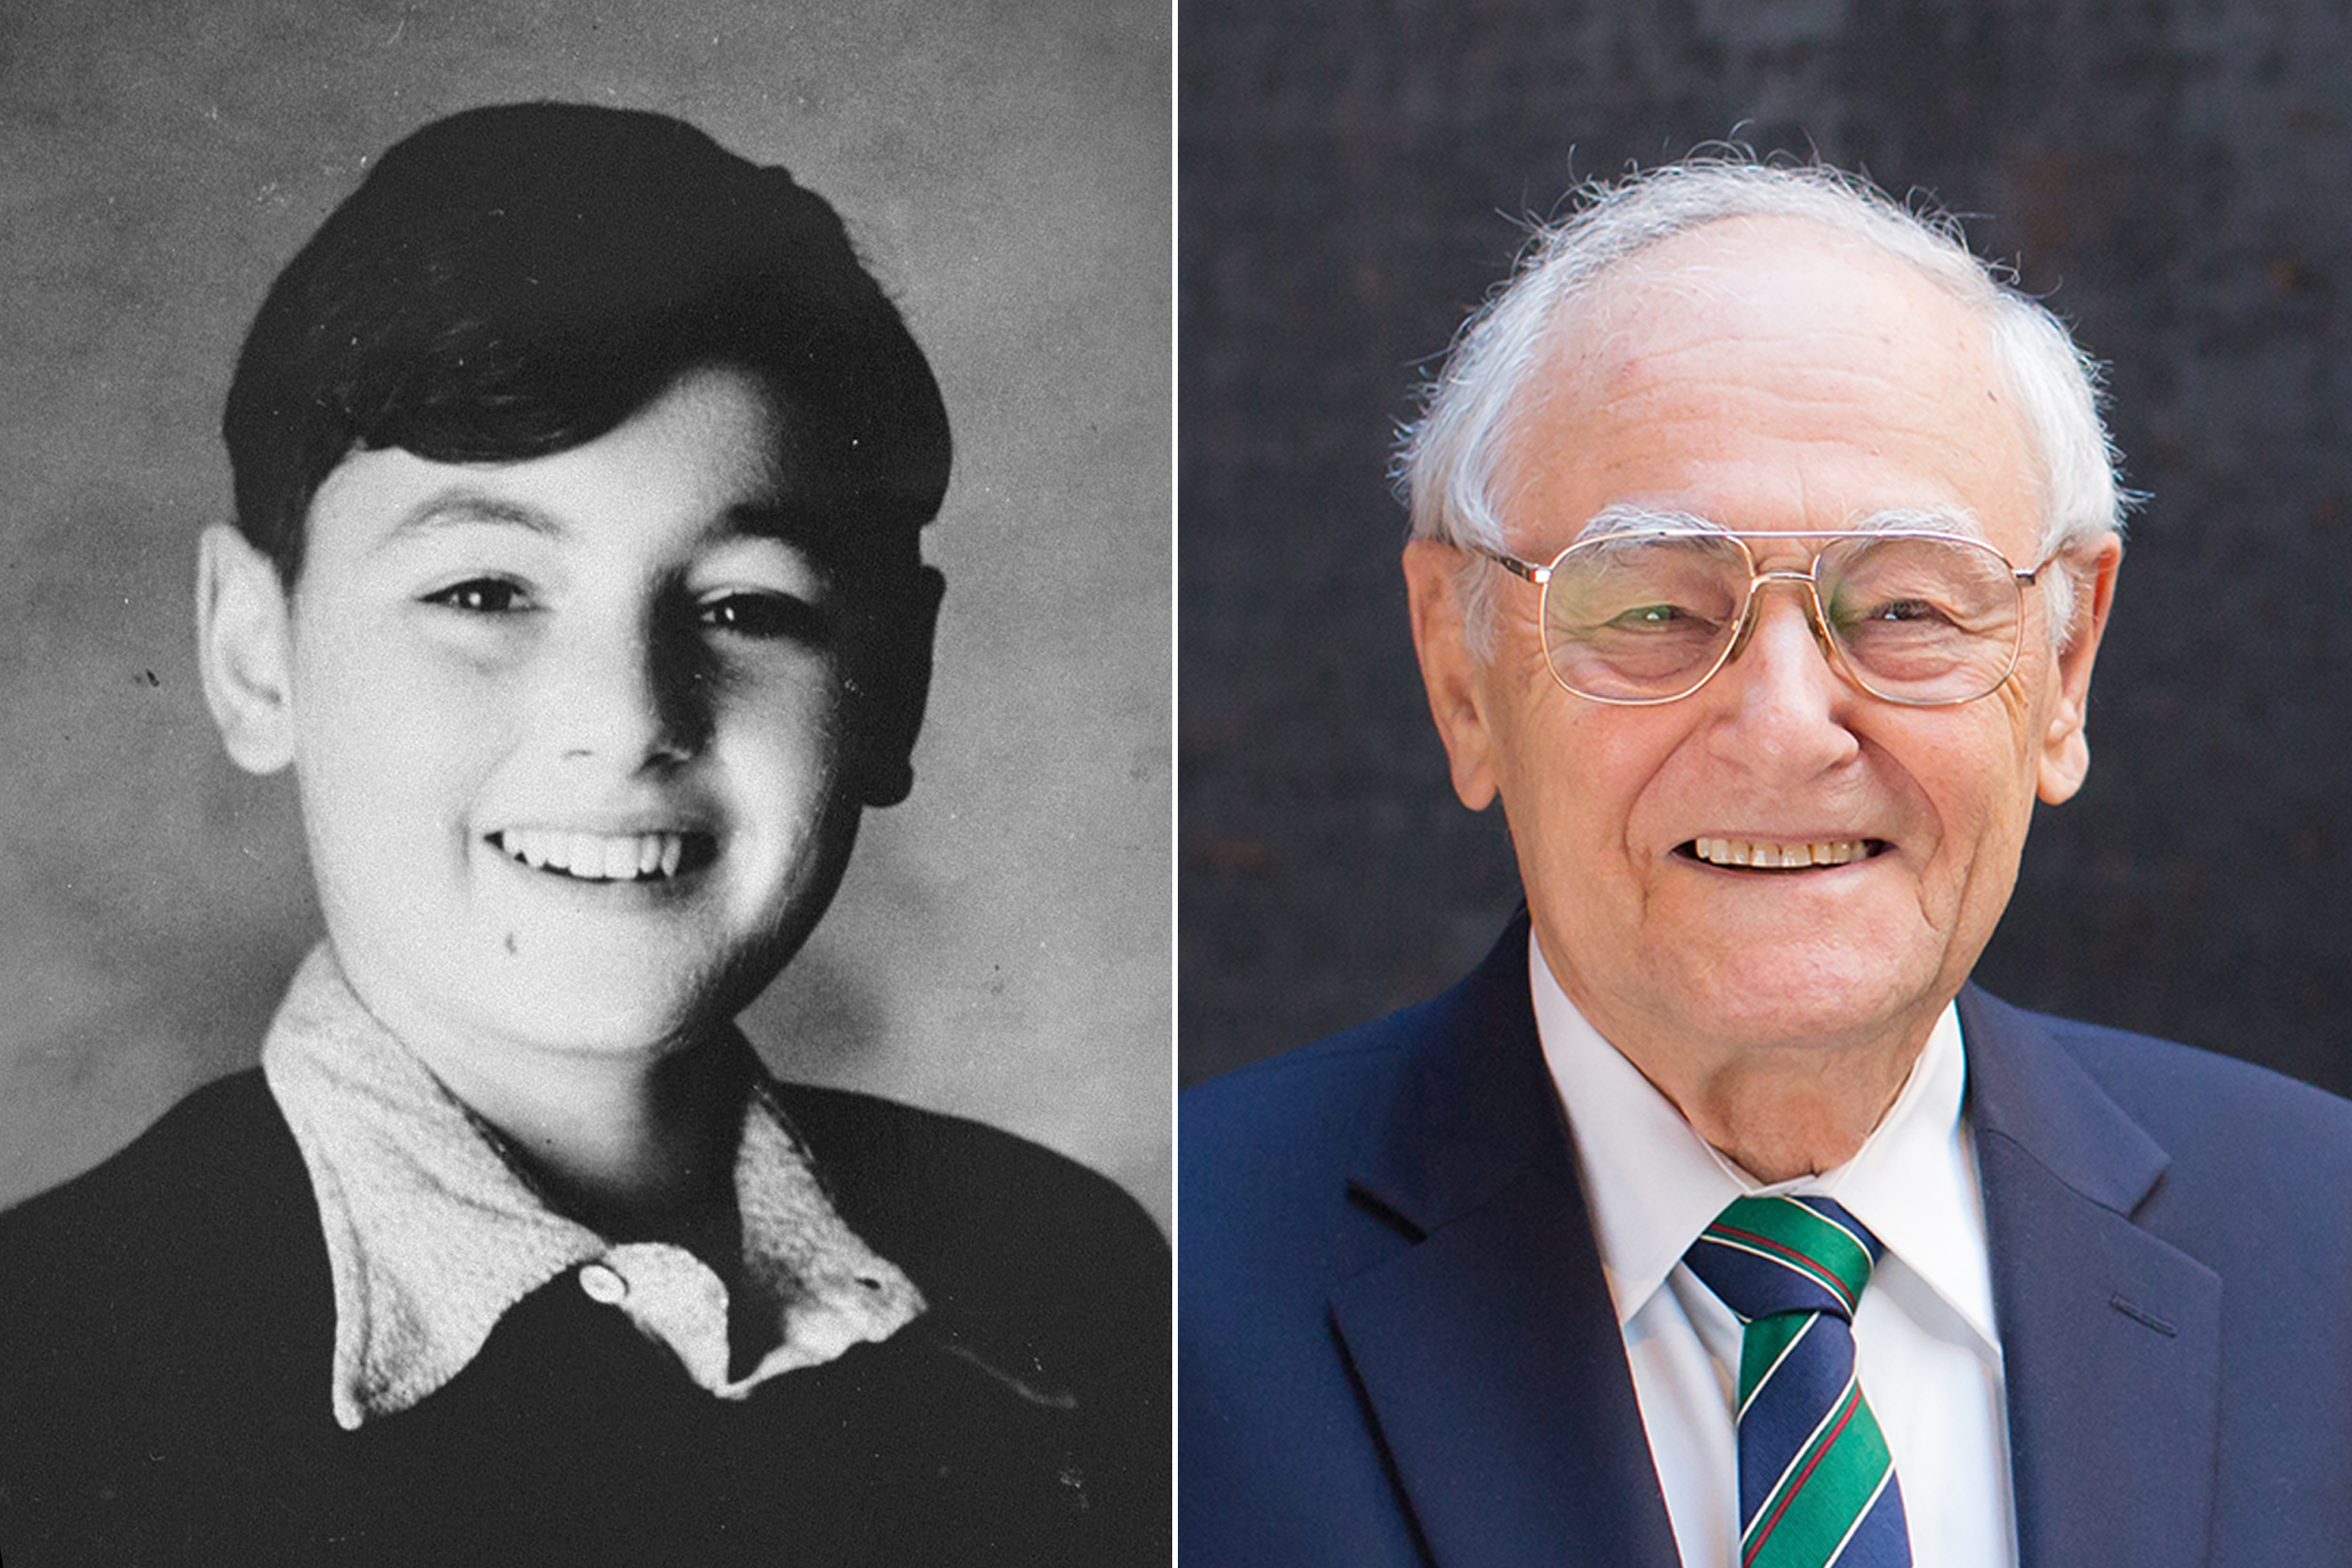 Photographs of Peter Feigl, Holocaust survivor and Museum volunteer, as a child and adult. US Holocaust Memorial Museum